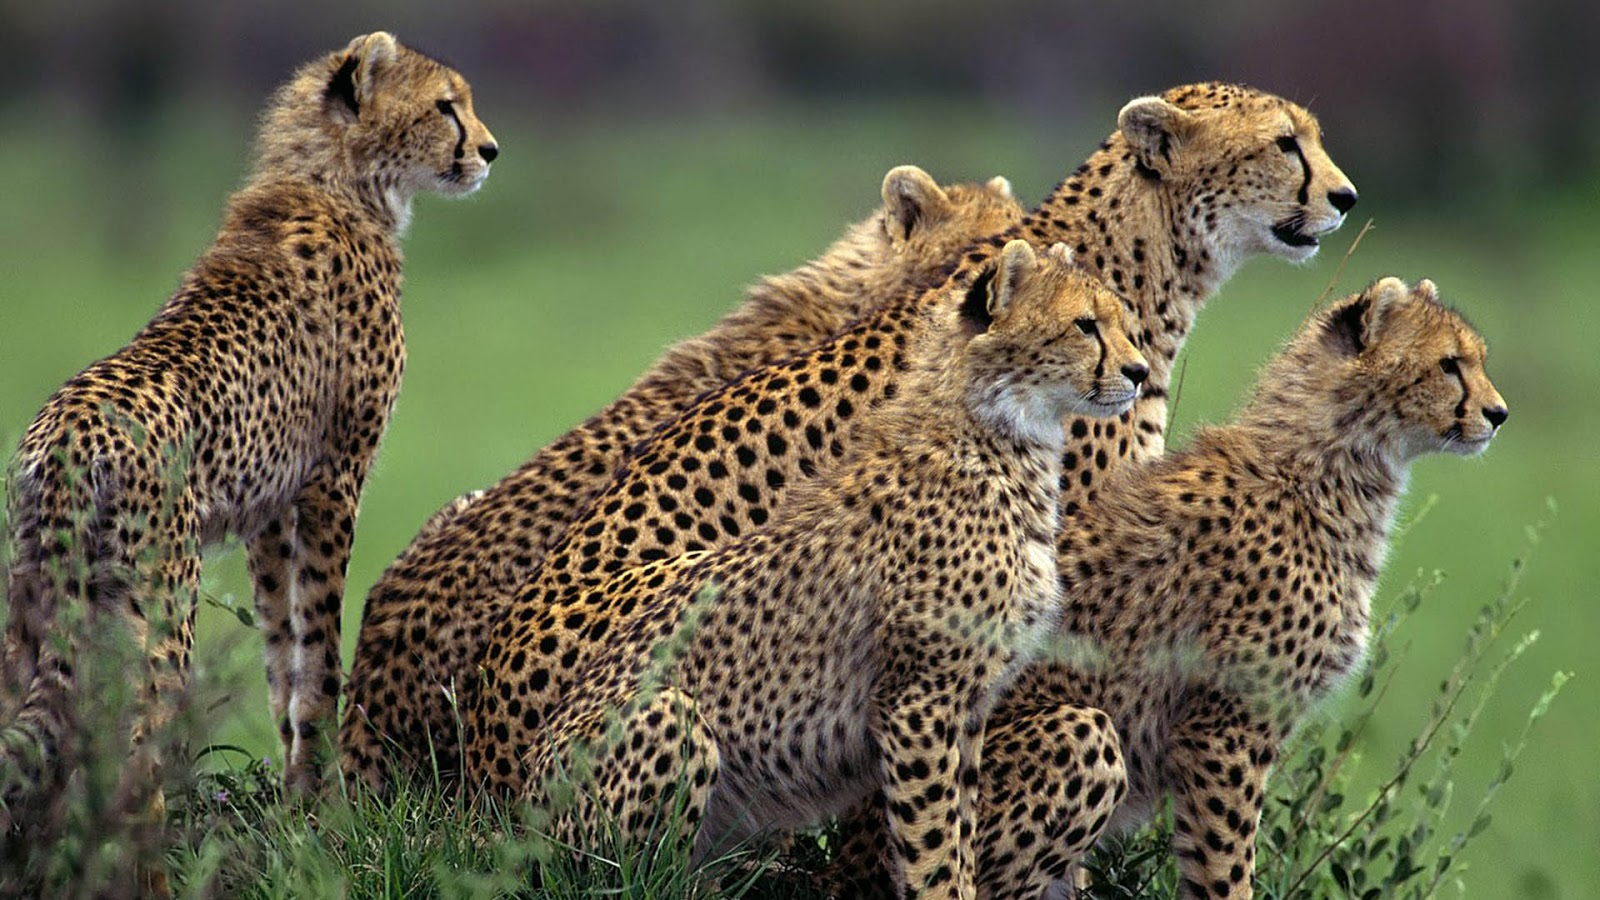 Hd Animals Wallpapers Free: Wallpapers Fair: African Animal Wallpapers Free Download